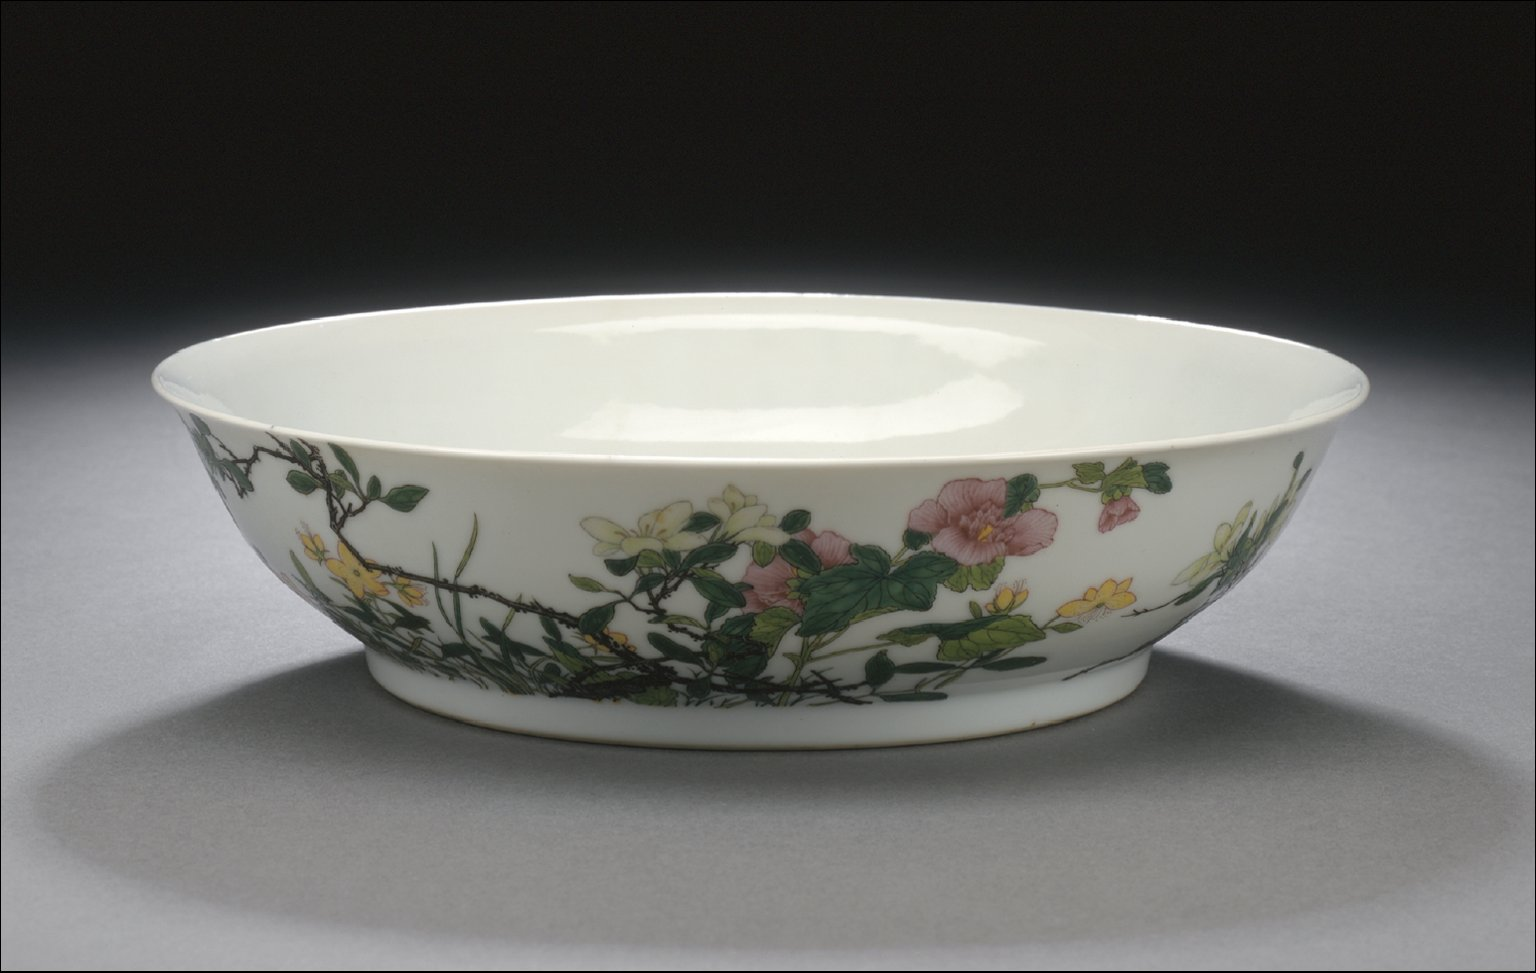 Bowl (Wan) with St. John's Wort, Rose Mallow, Gardenia, and Poem